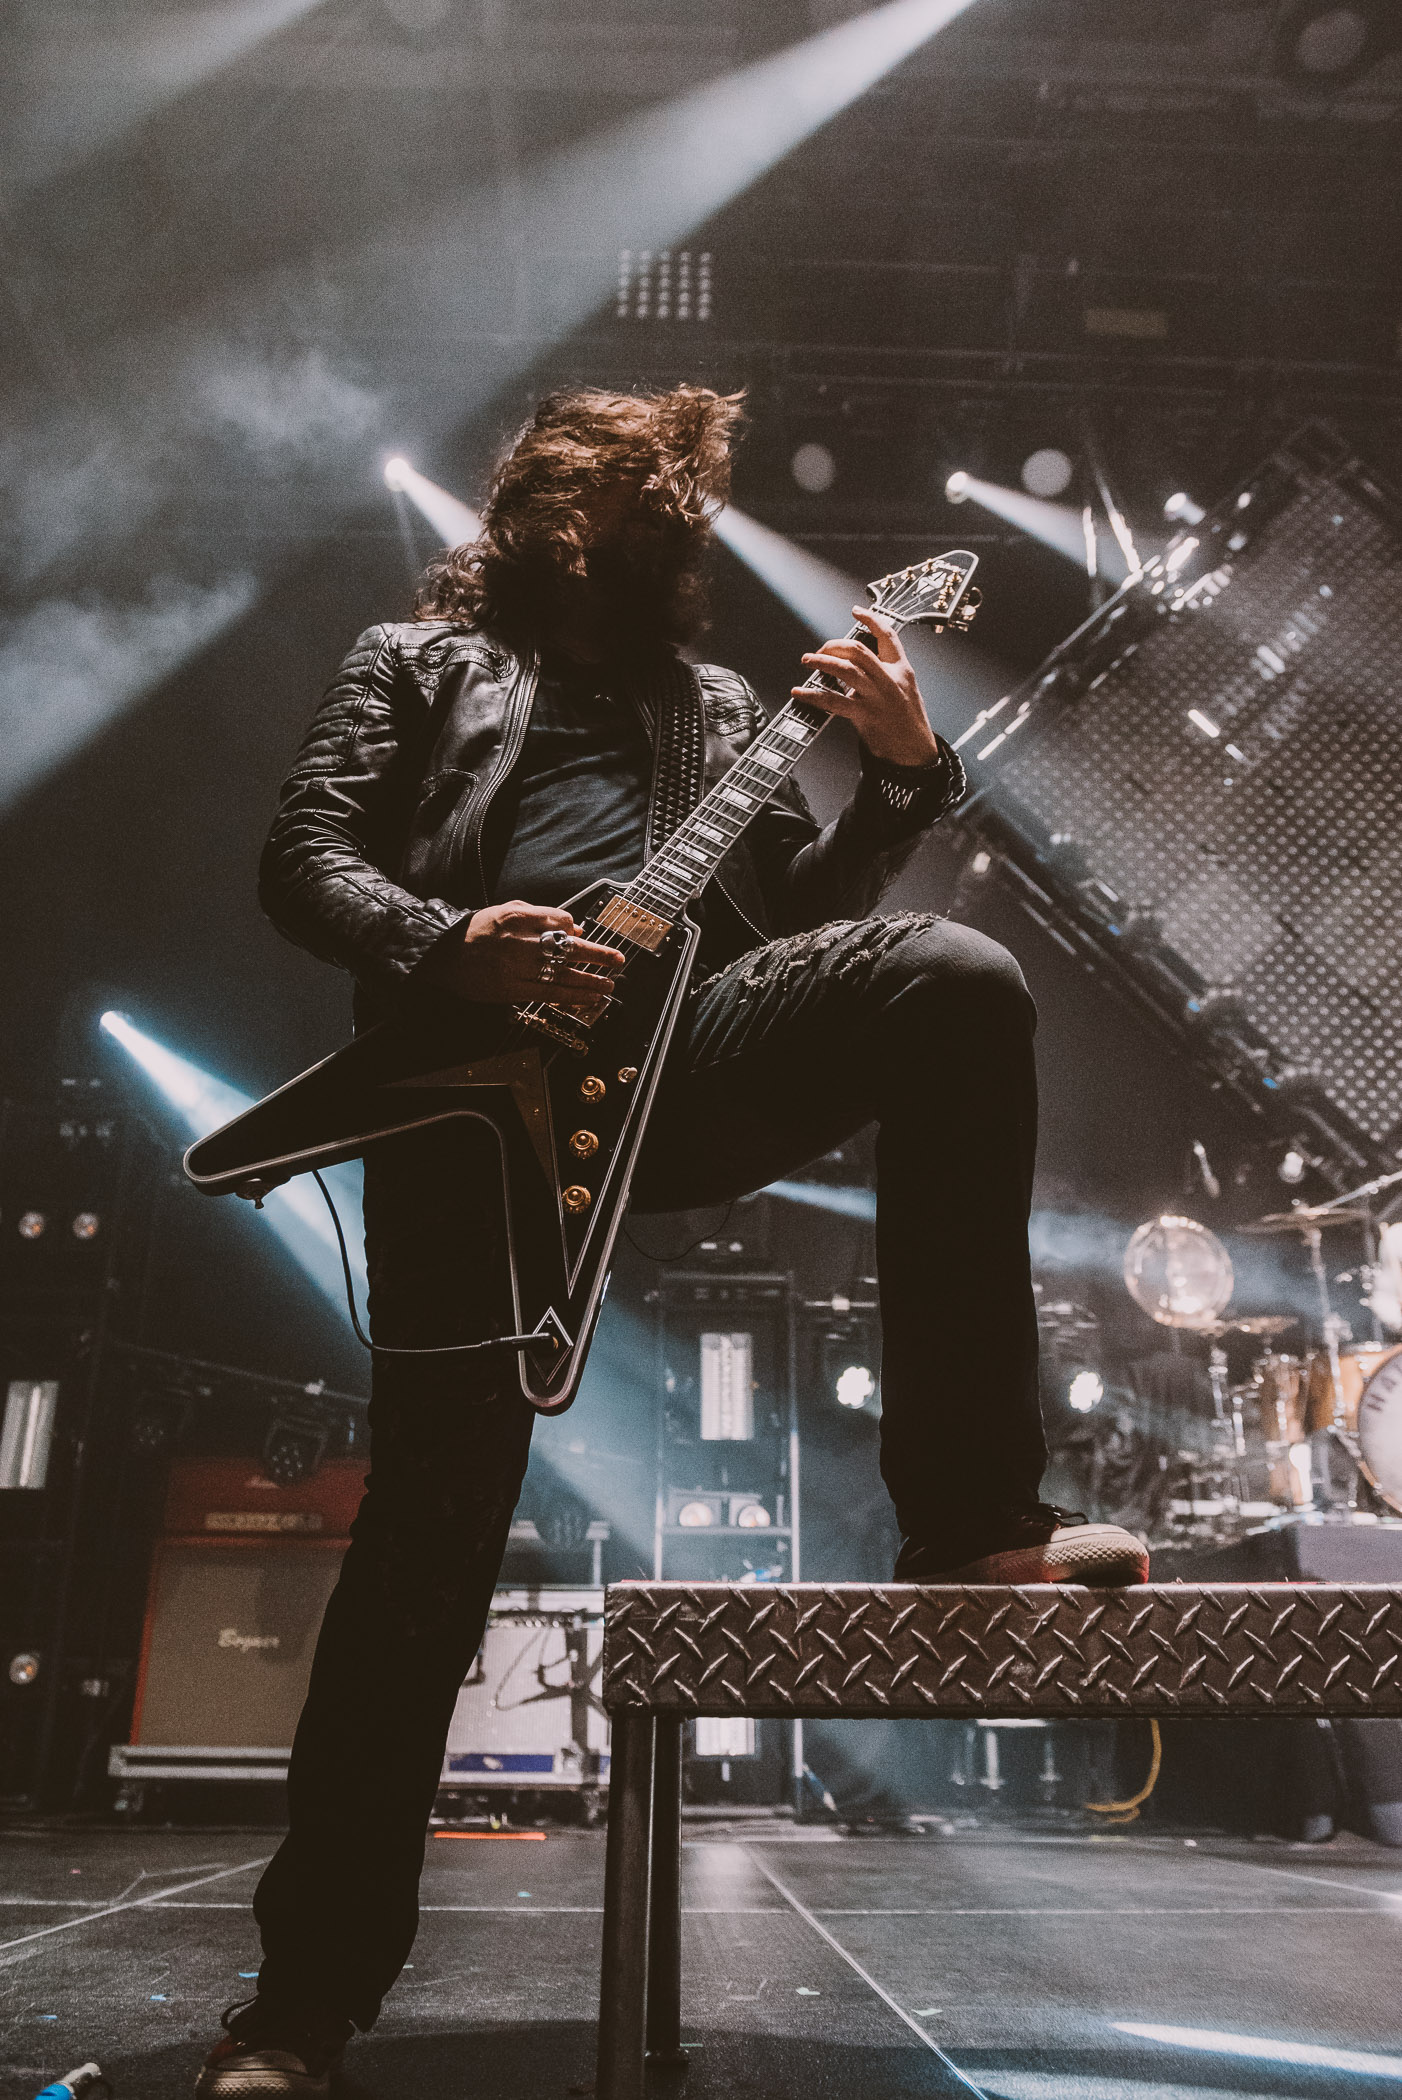 2_Halestorm-Abbotsford_Centre-Timothy_Nguyen-20180127 (6 of 15).jpg